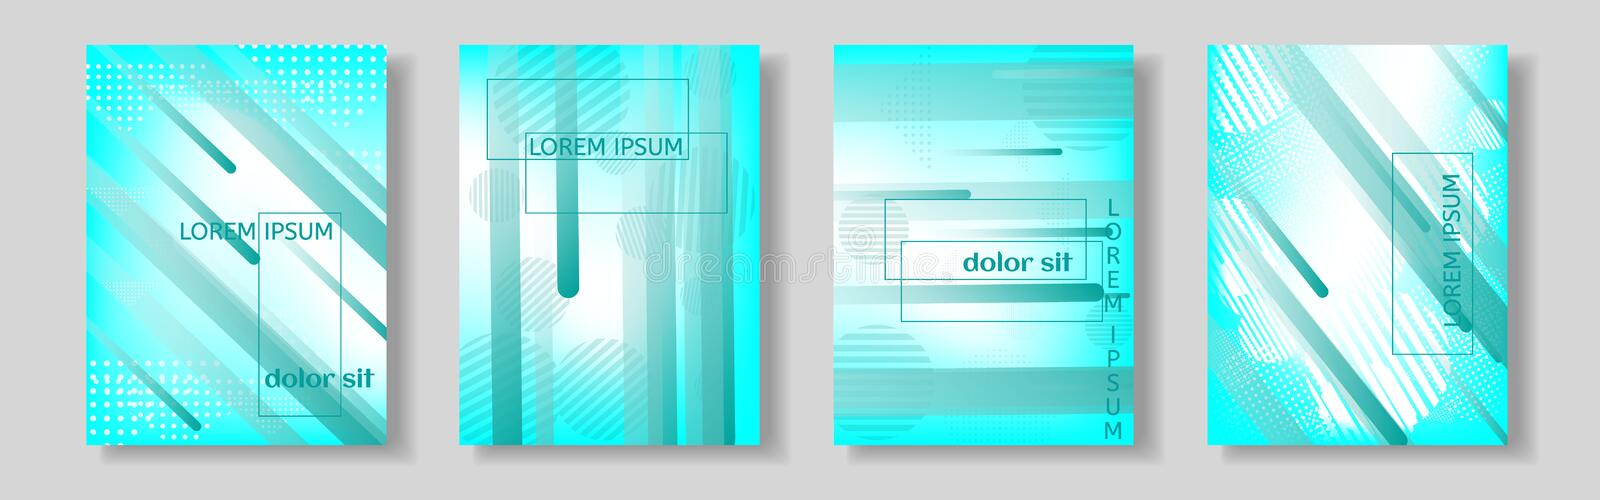 Minimal covers design. Colorful halftone gradients. Future geometric patterns. royalty free illustration